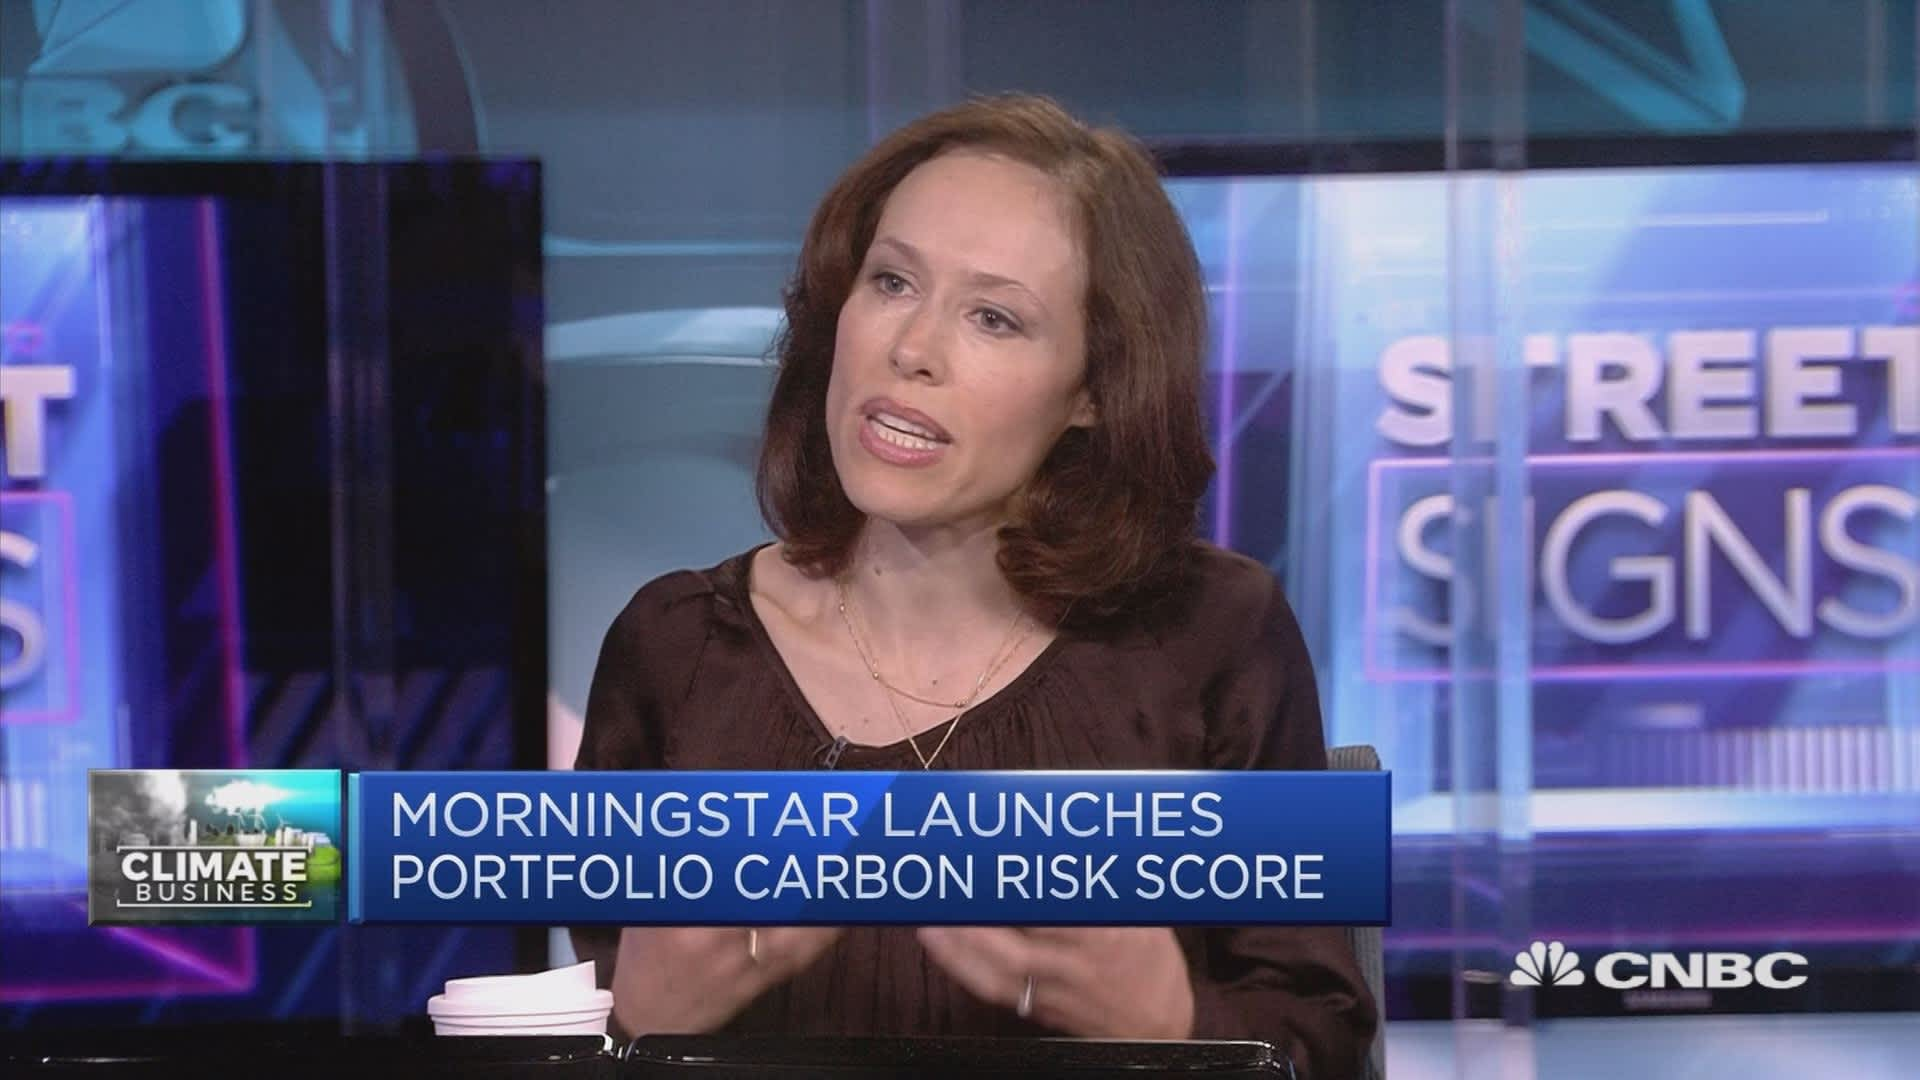 Morningstar: Climate change poses challenge to investors